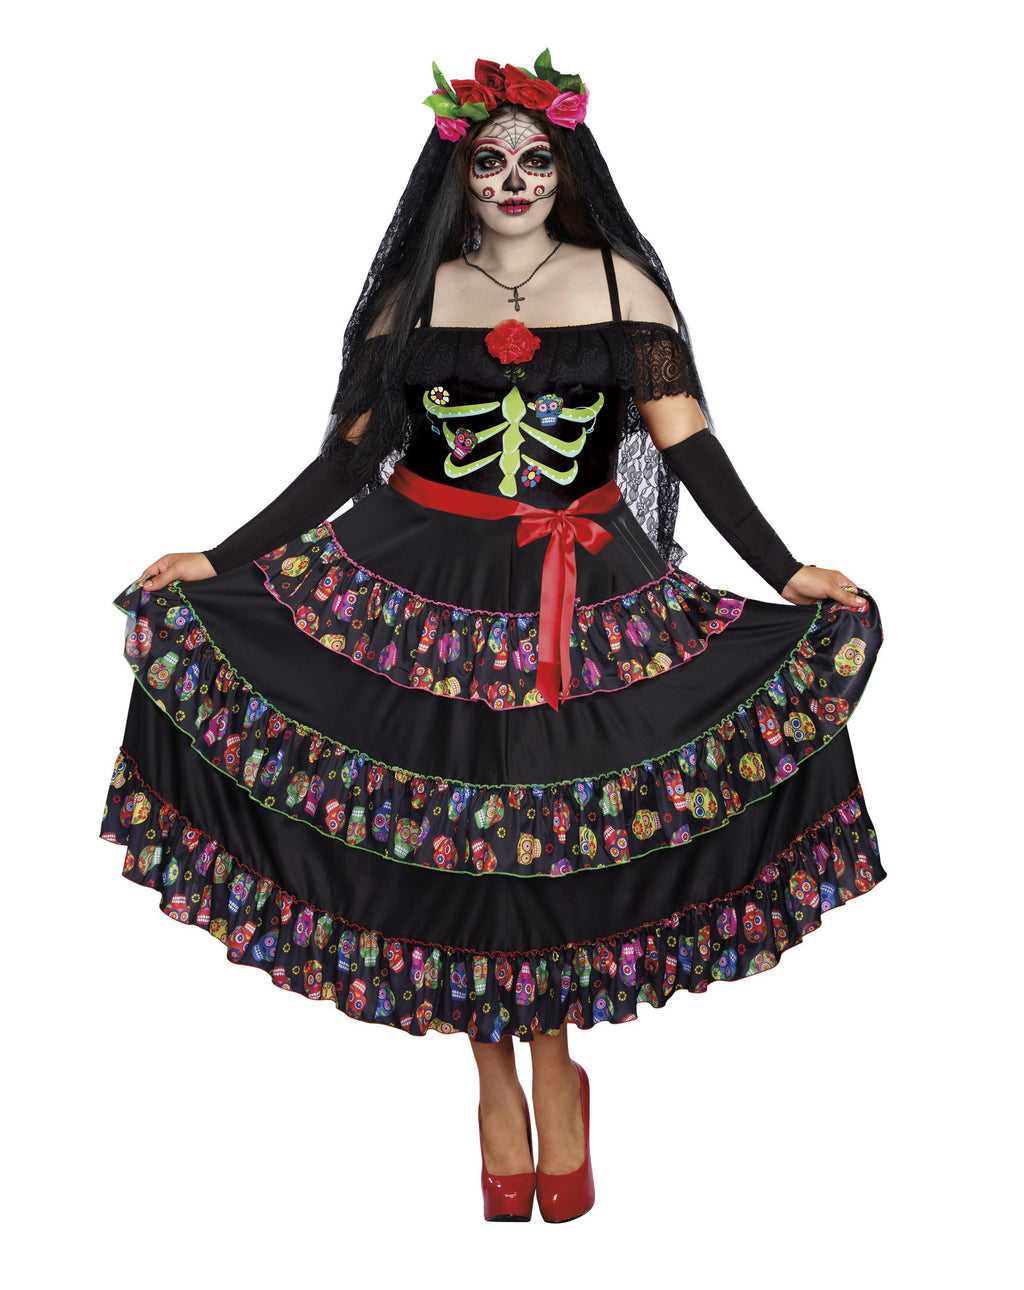 Dreamgirl Costumes 1X Lady of the Dead Plus Costume - Day of the Dead